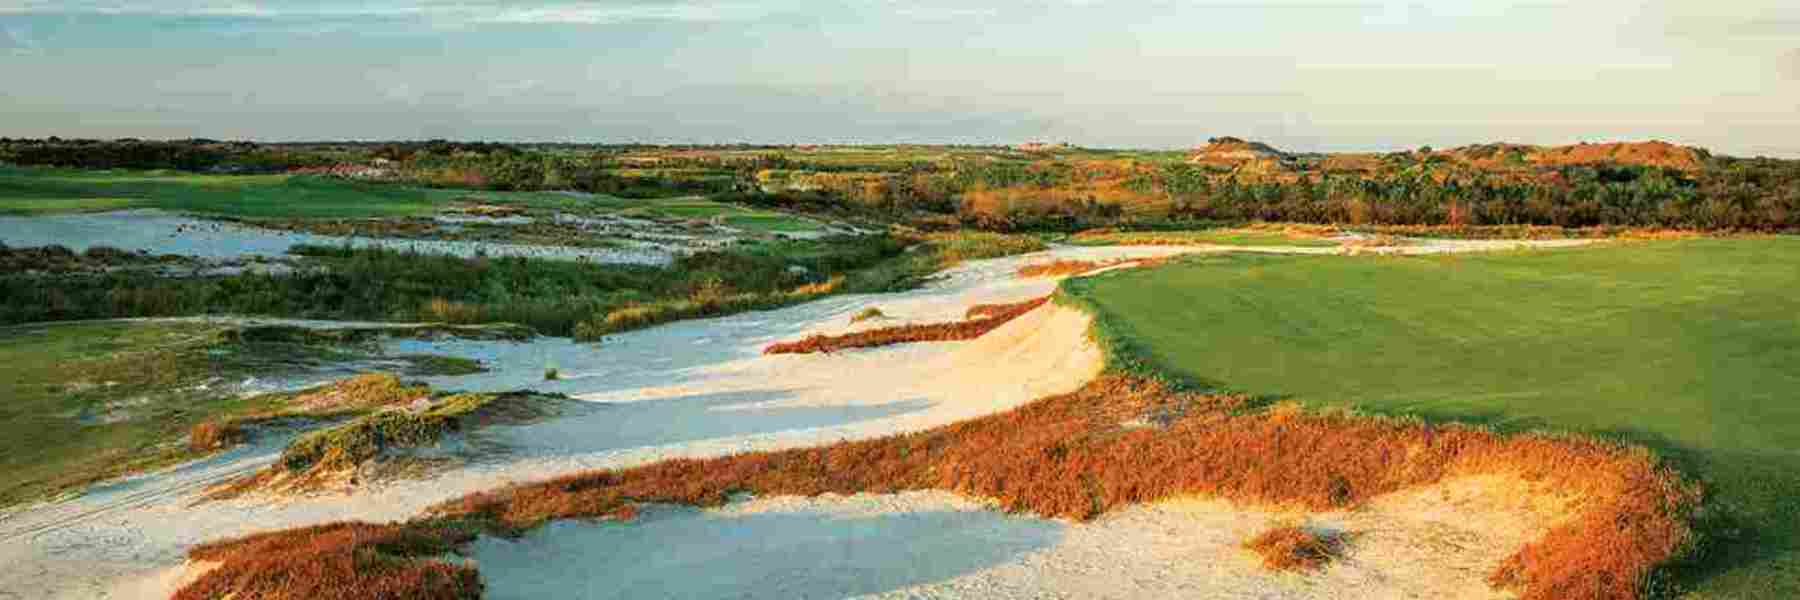 Golf Vacation Package - Streamsong Black